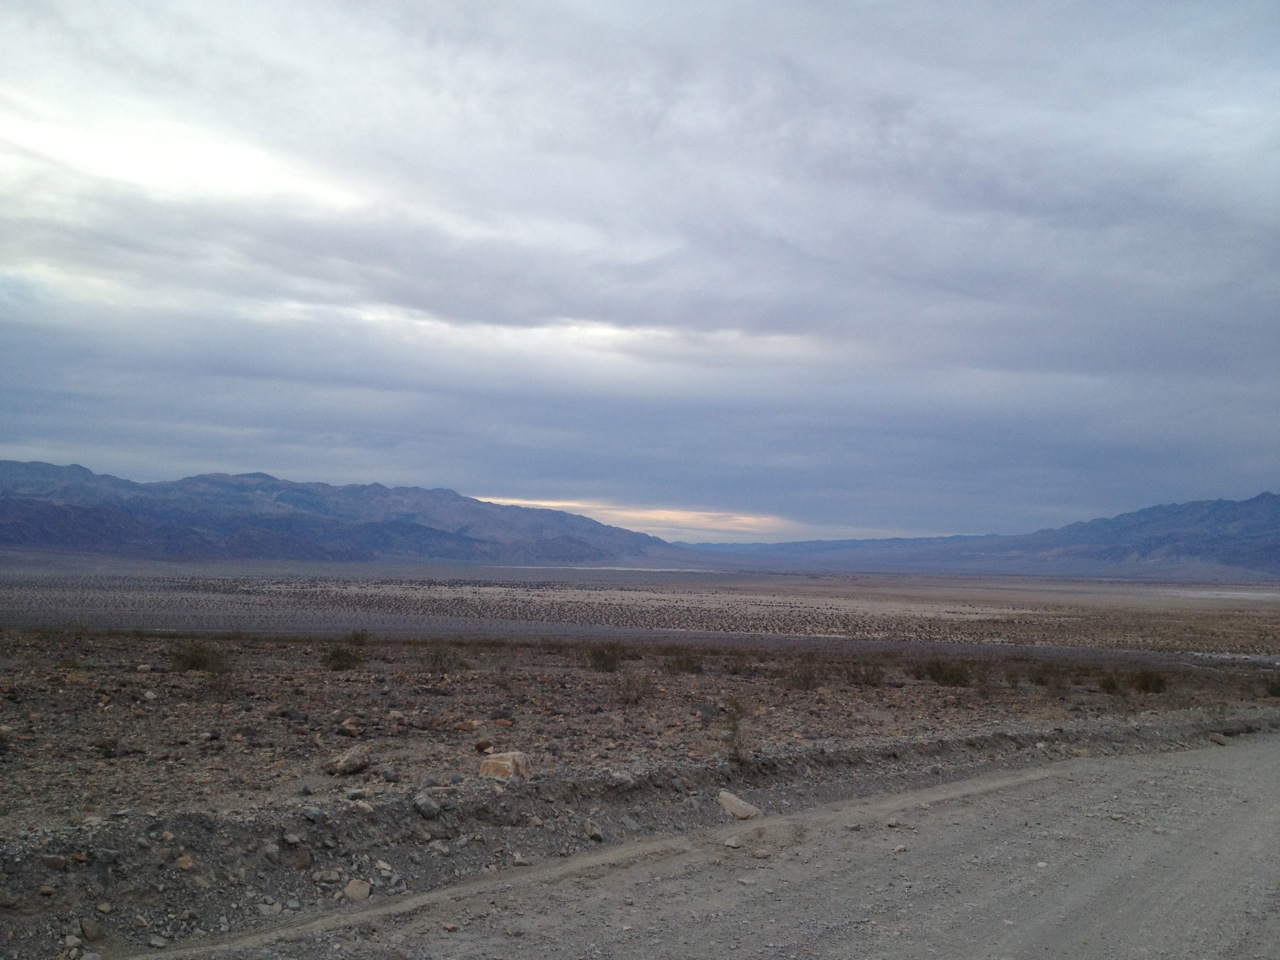 View of Death Valley, looking north from Mosaic Canyon Road, west of Stovepipe Wells.